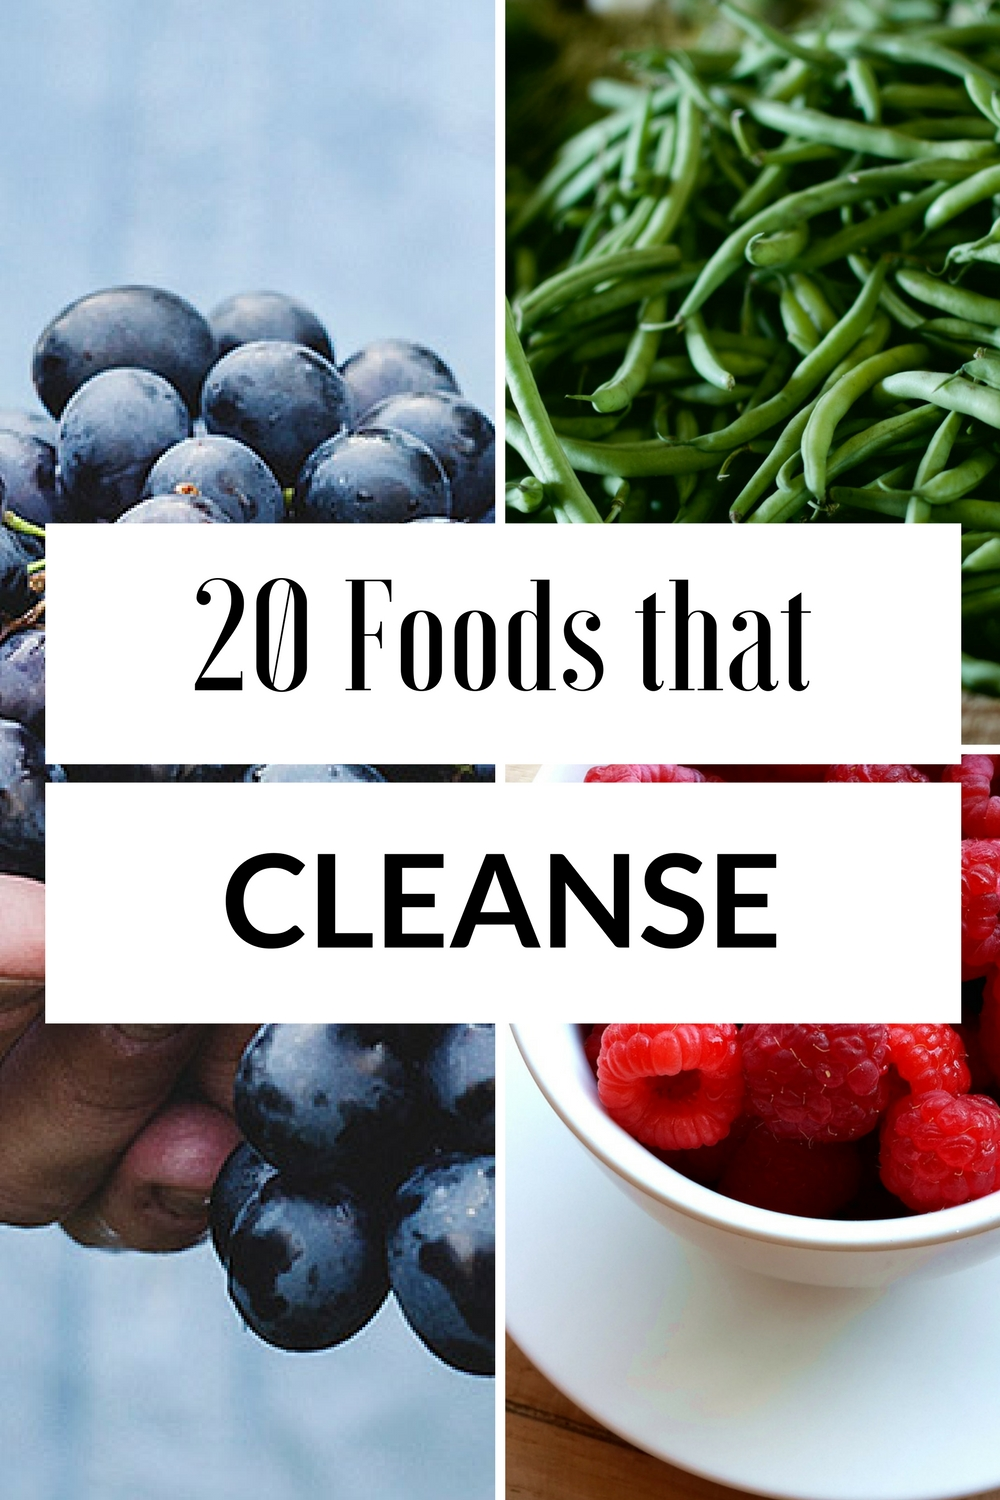 20 foods that Cleanse